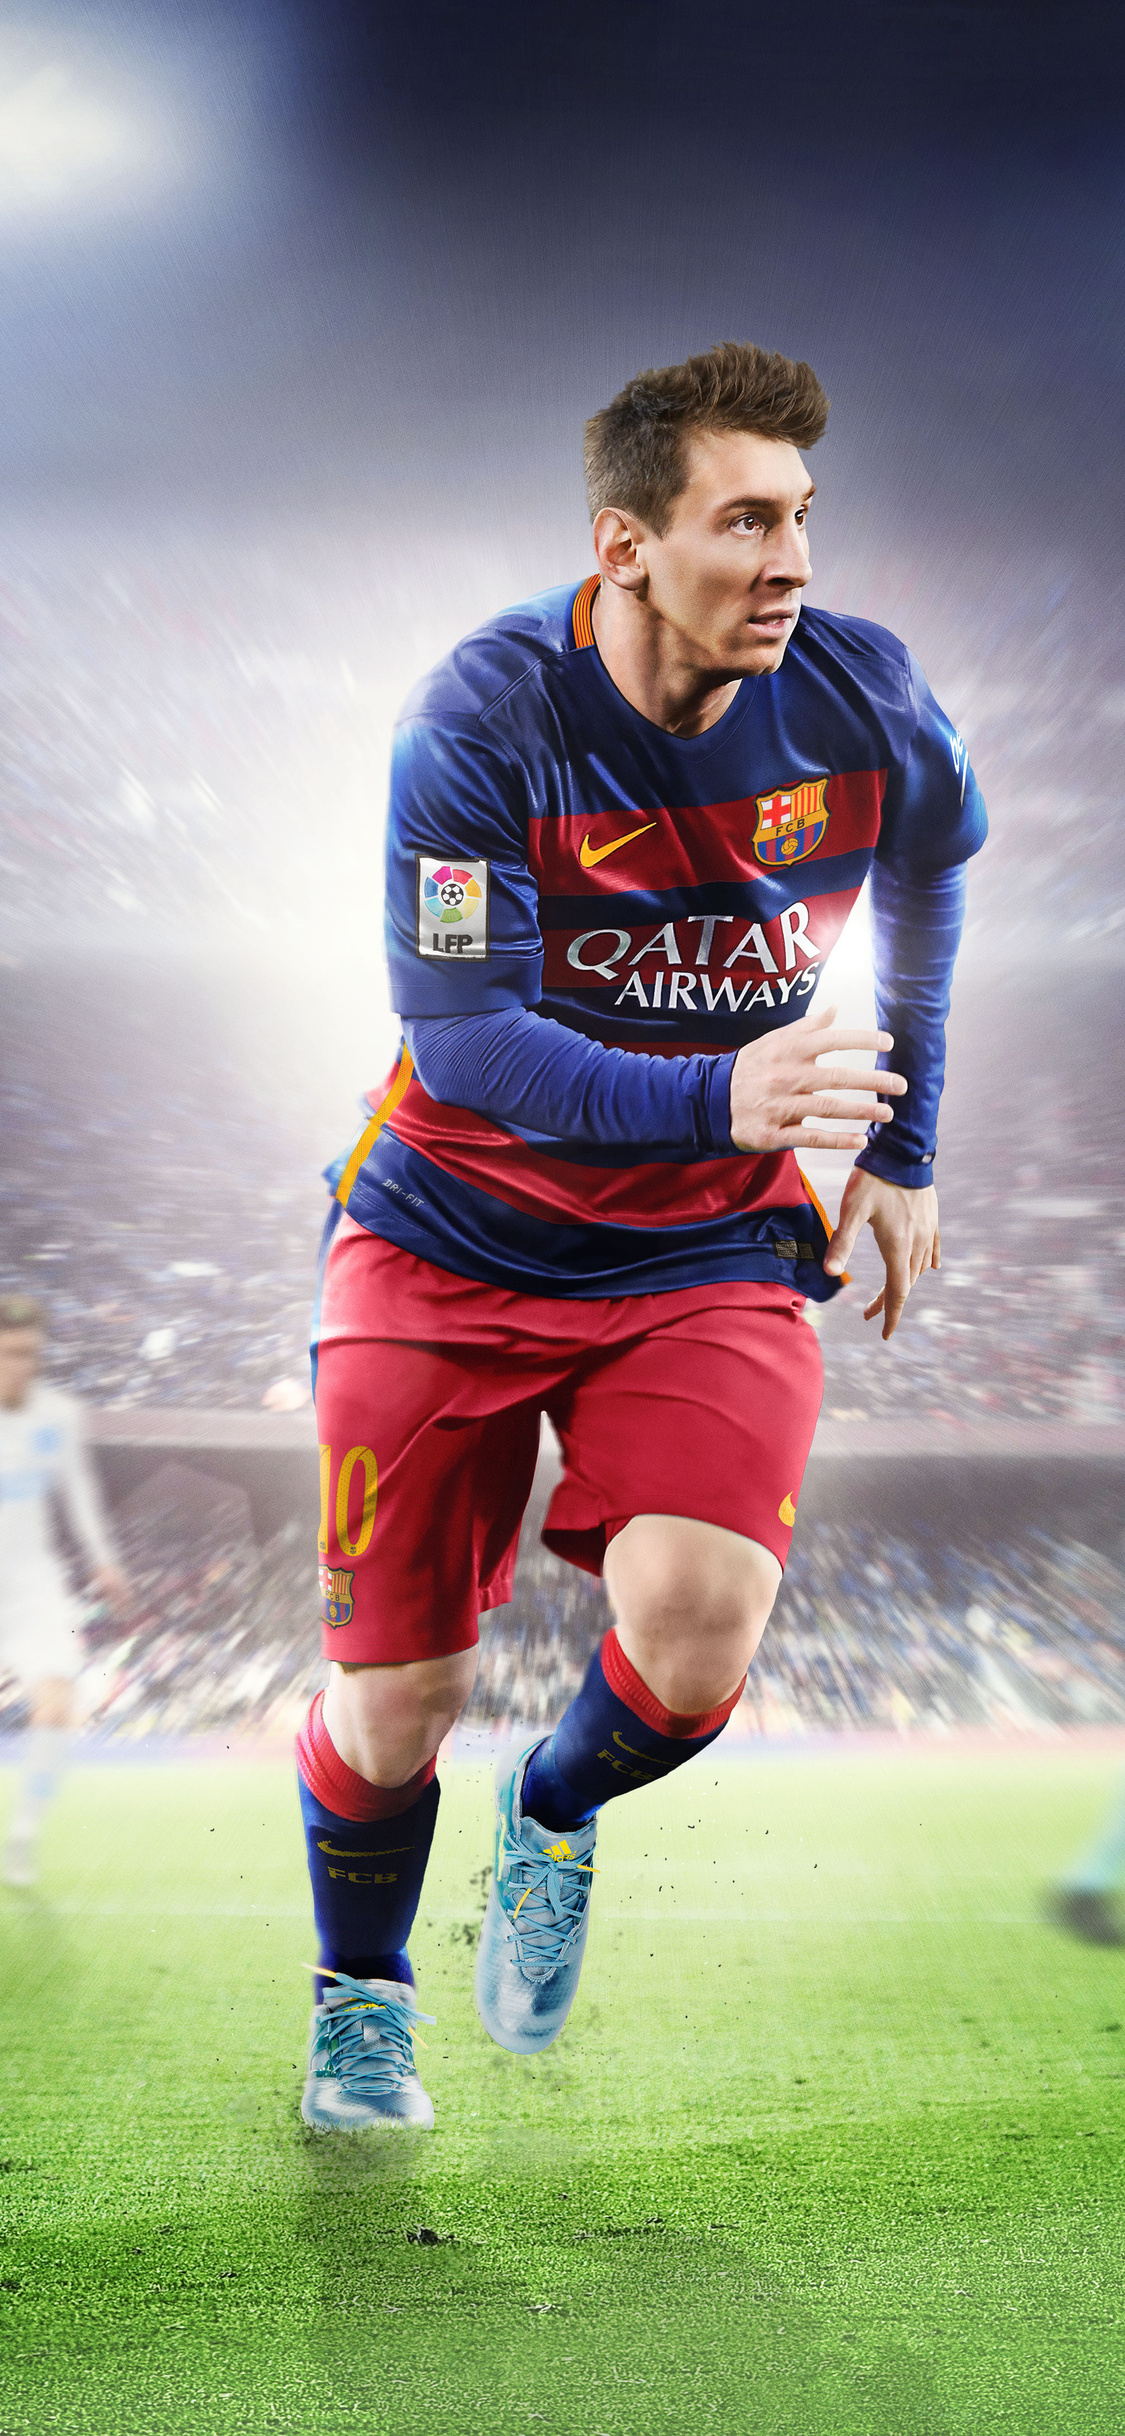 1125x2436 Messi Fifa 8k Iphone Xs Iphone 10 Iphone X Hd 4k Wallpapers Images Backgrounds Photos And Pictures